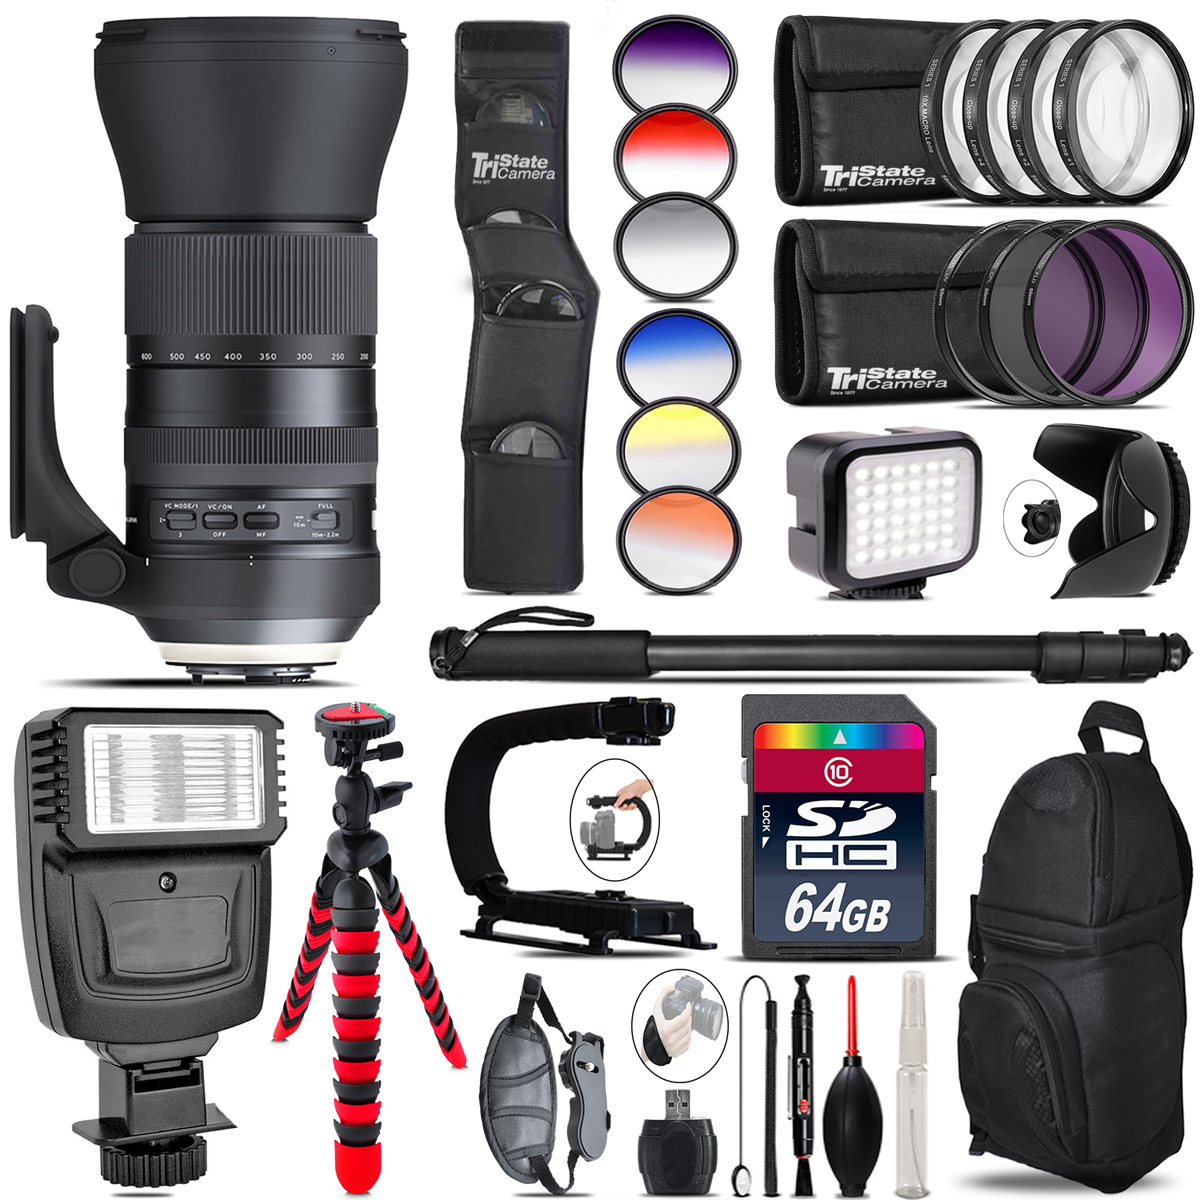 Tamron 150-600mm G2 for Canon + Color Set + LED Light - 64GB Accessory Bundle *FREE SHIPPING*